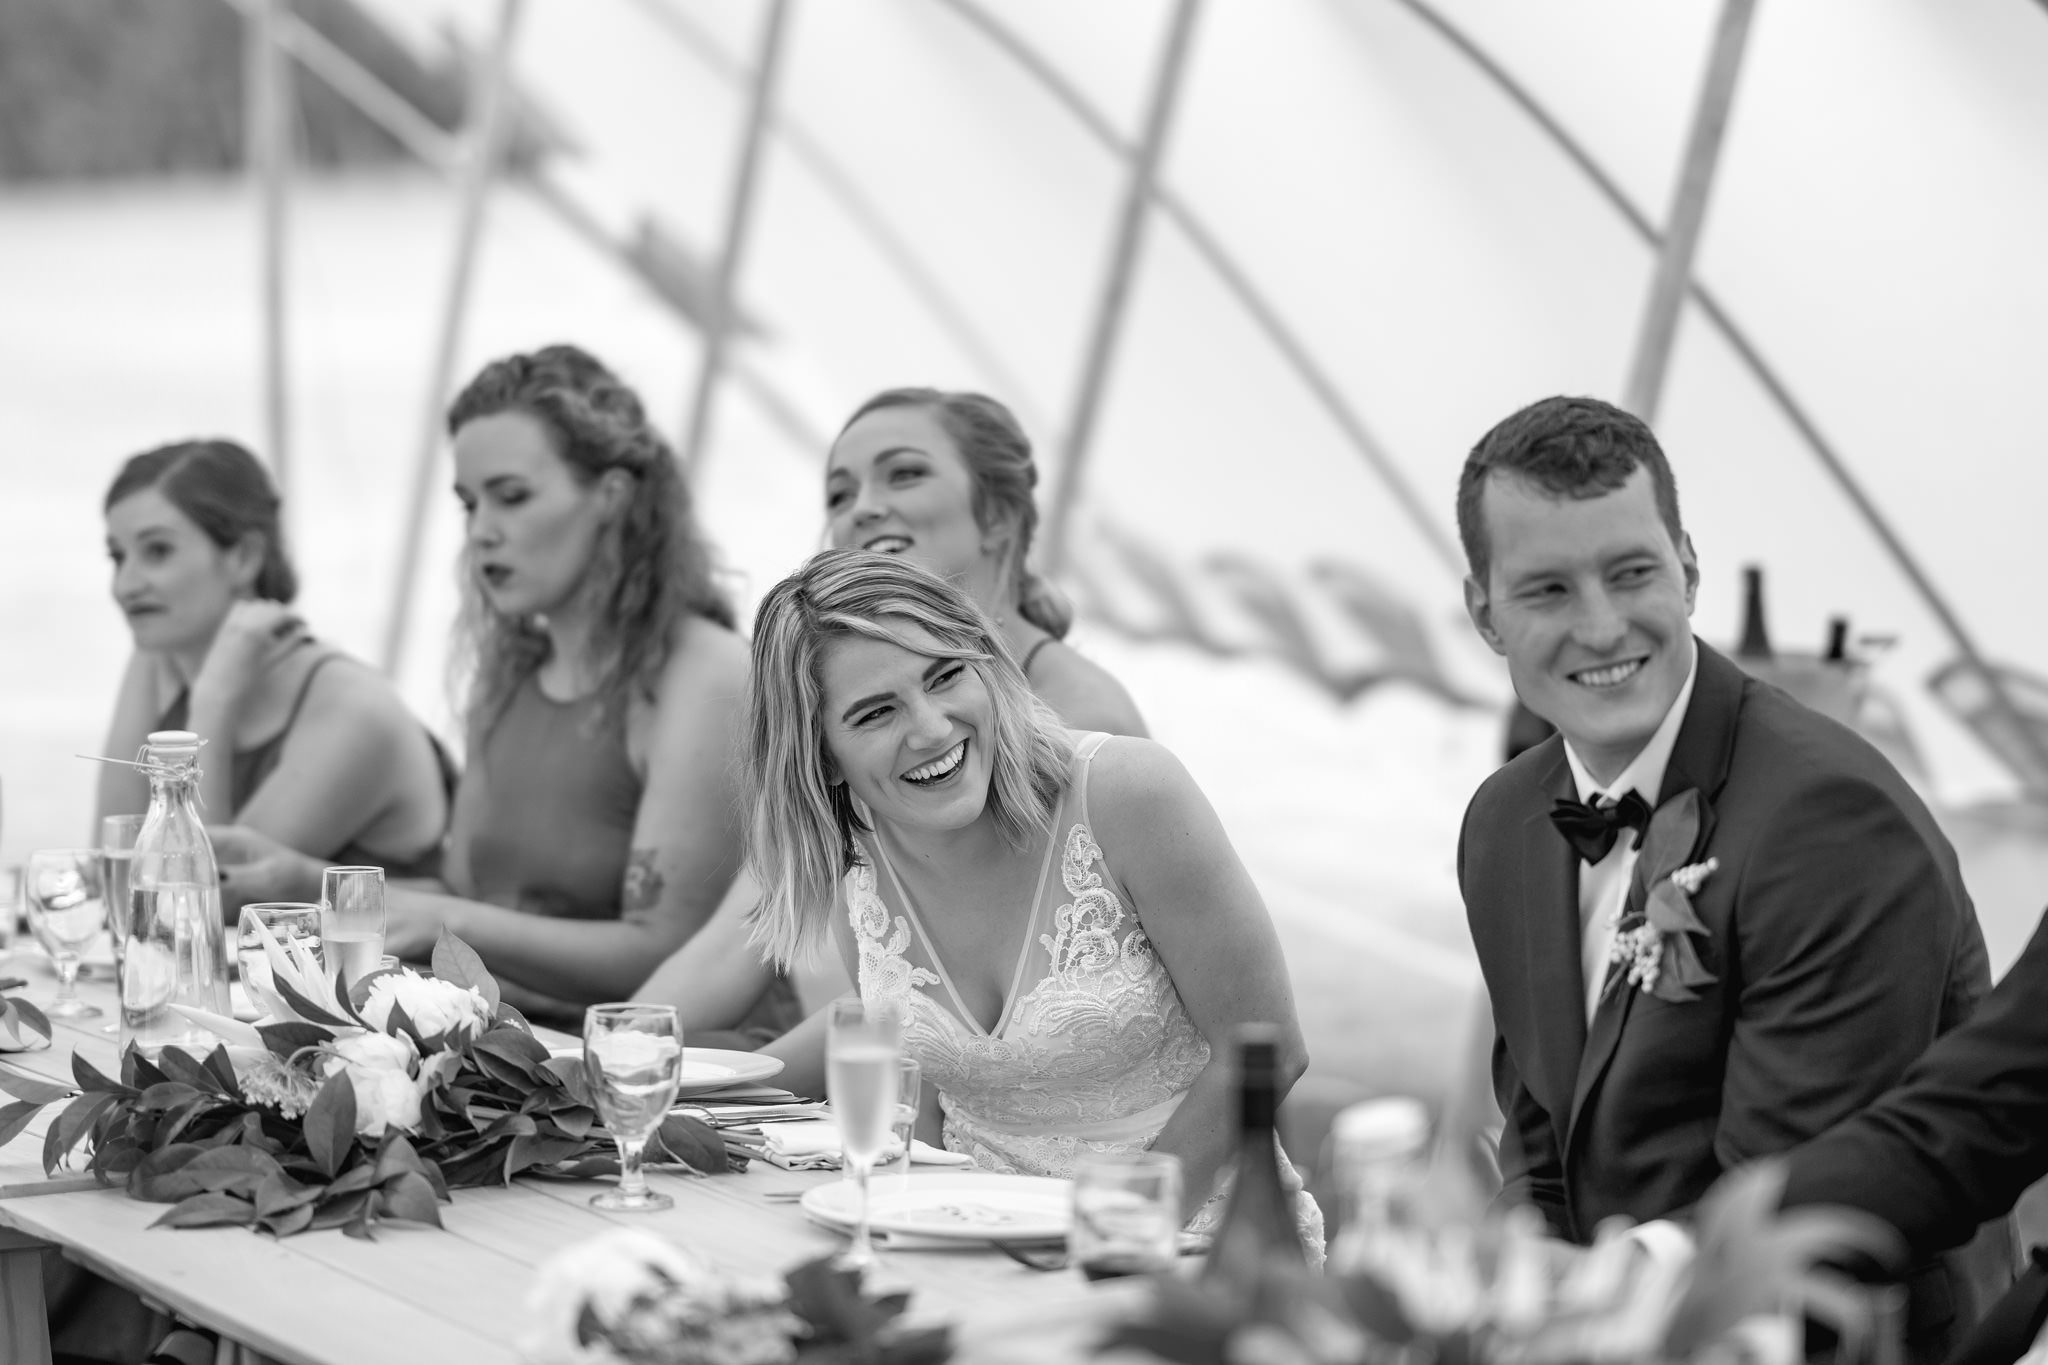 newfound-s-a-tauranga-new-zealand-wedding-photography-799